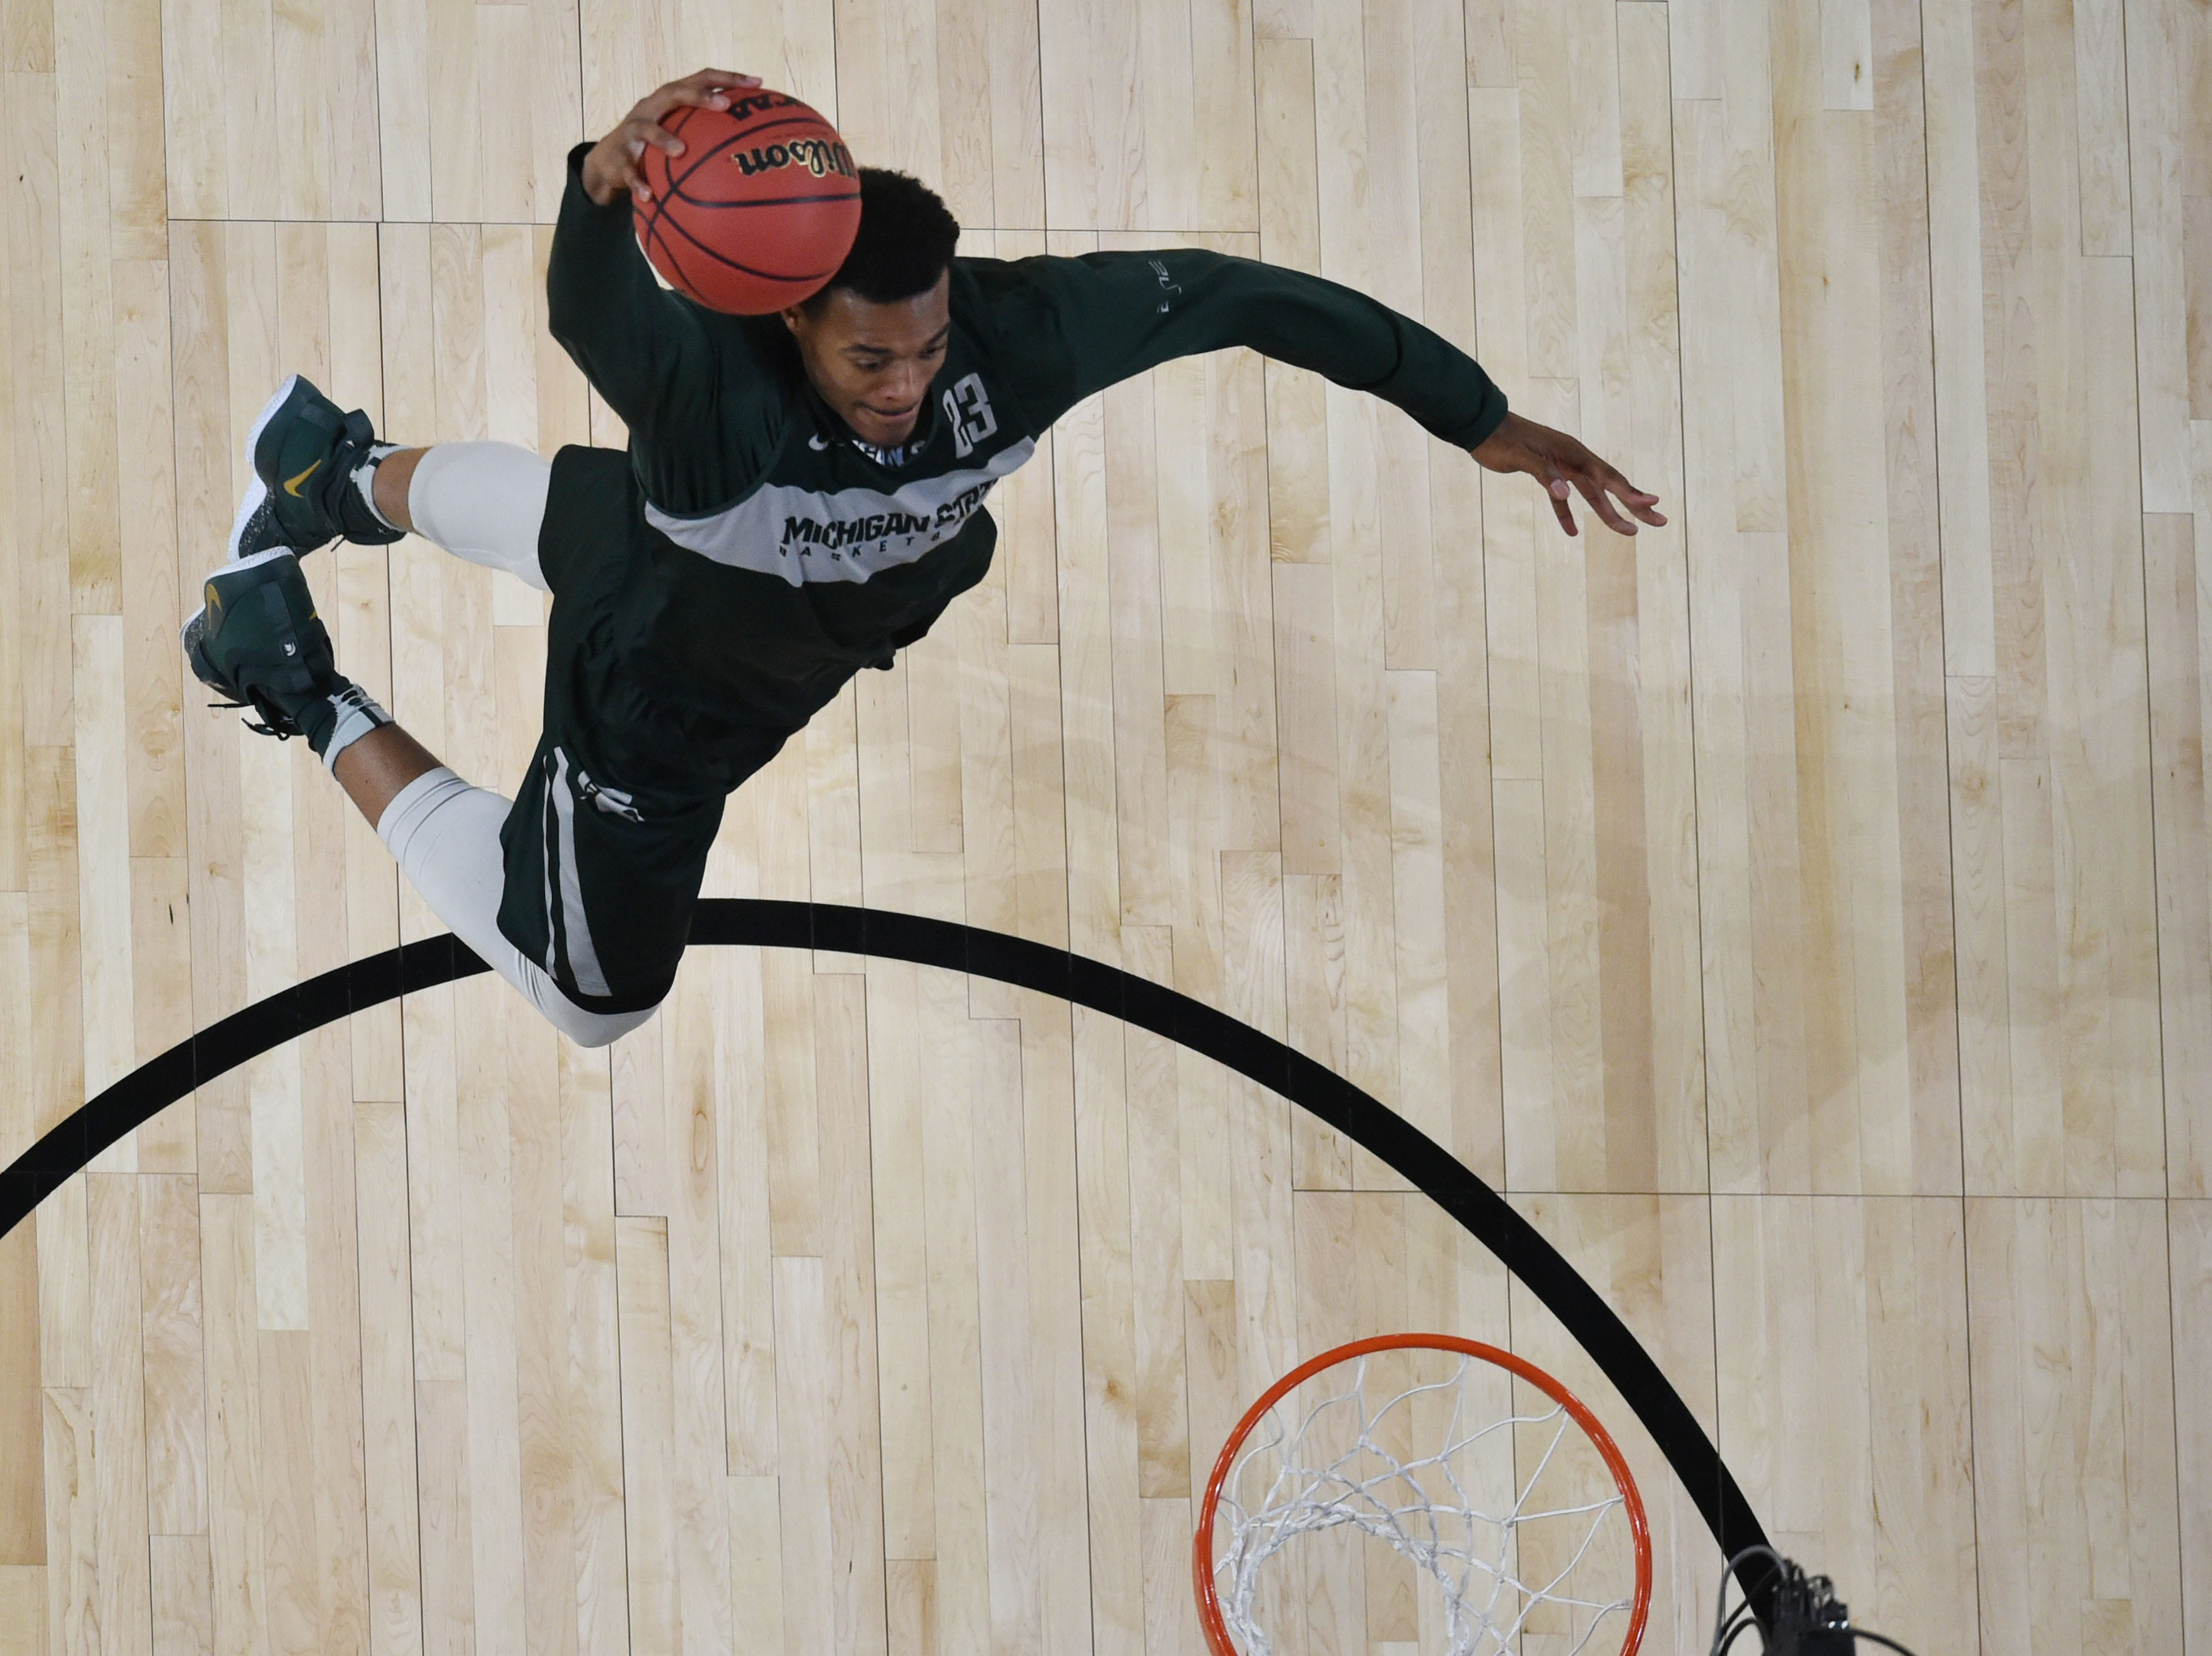 Apr 5, 2019; Minneapolis, MN, USA; Michigan State Spartans forward Xavier Tillman dunks the ball during practice for the 2019 men's Final Four at US Bank Stadium. Mandatory Credit: Robert Deutsch-USA TODAY Sports